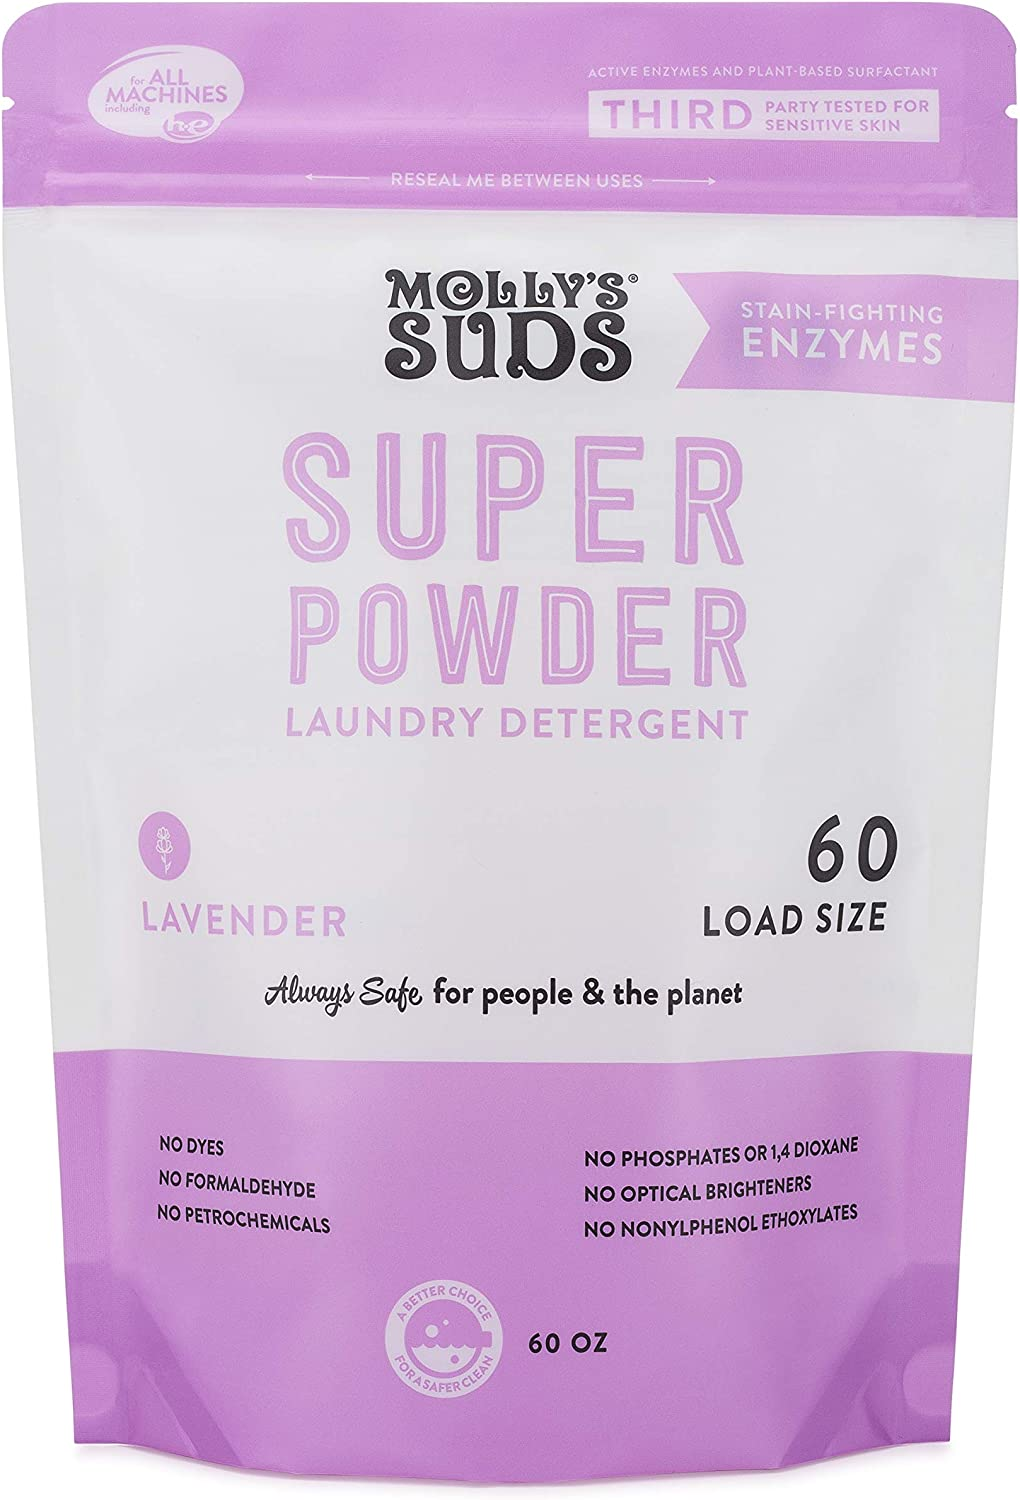 Molly's Suds Super Powder Detergent, Natural Extra Strength Laundry Soap, Stain Fighting and Safe for Sensitive Skin, 60 Loads, Lavender Scent